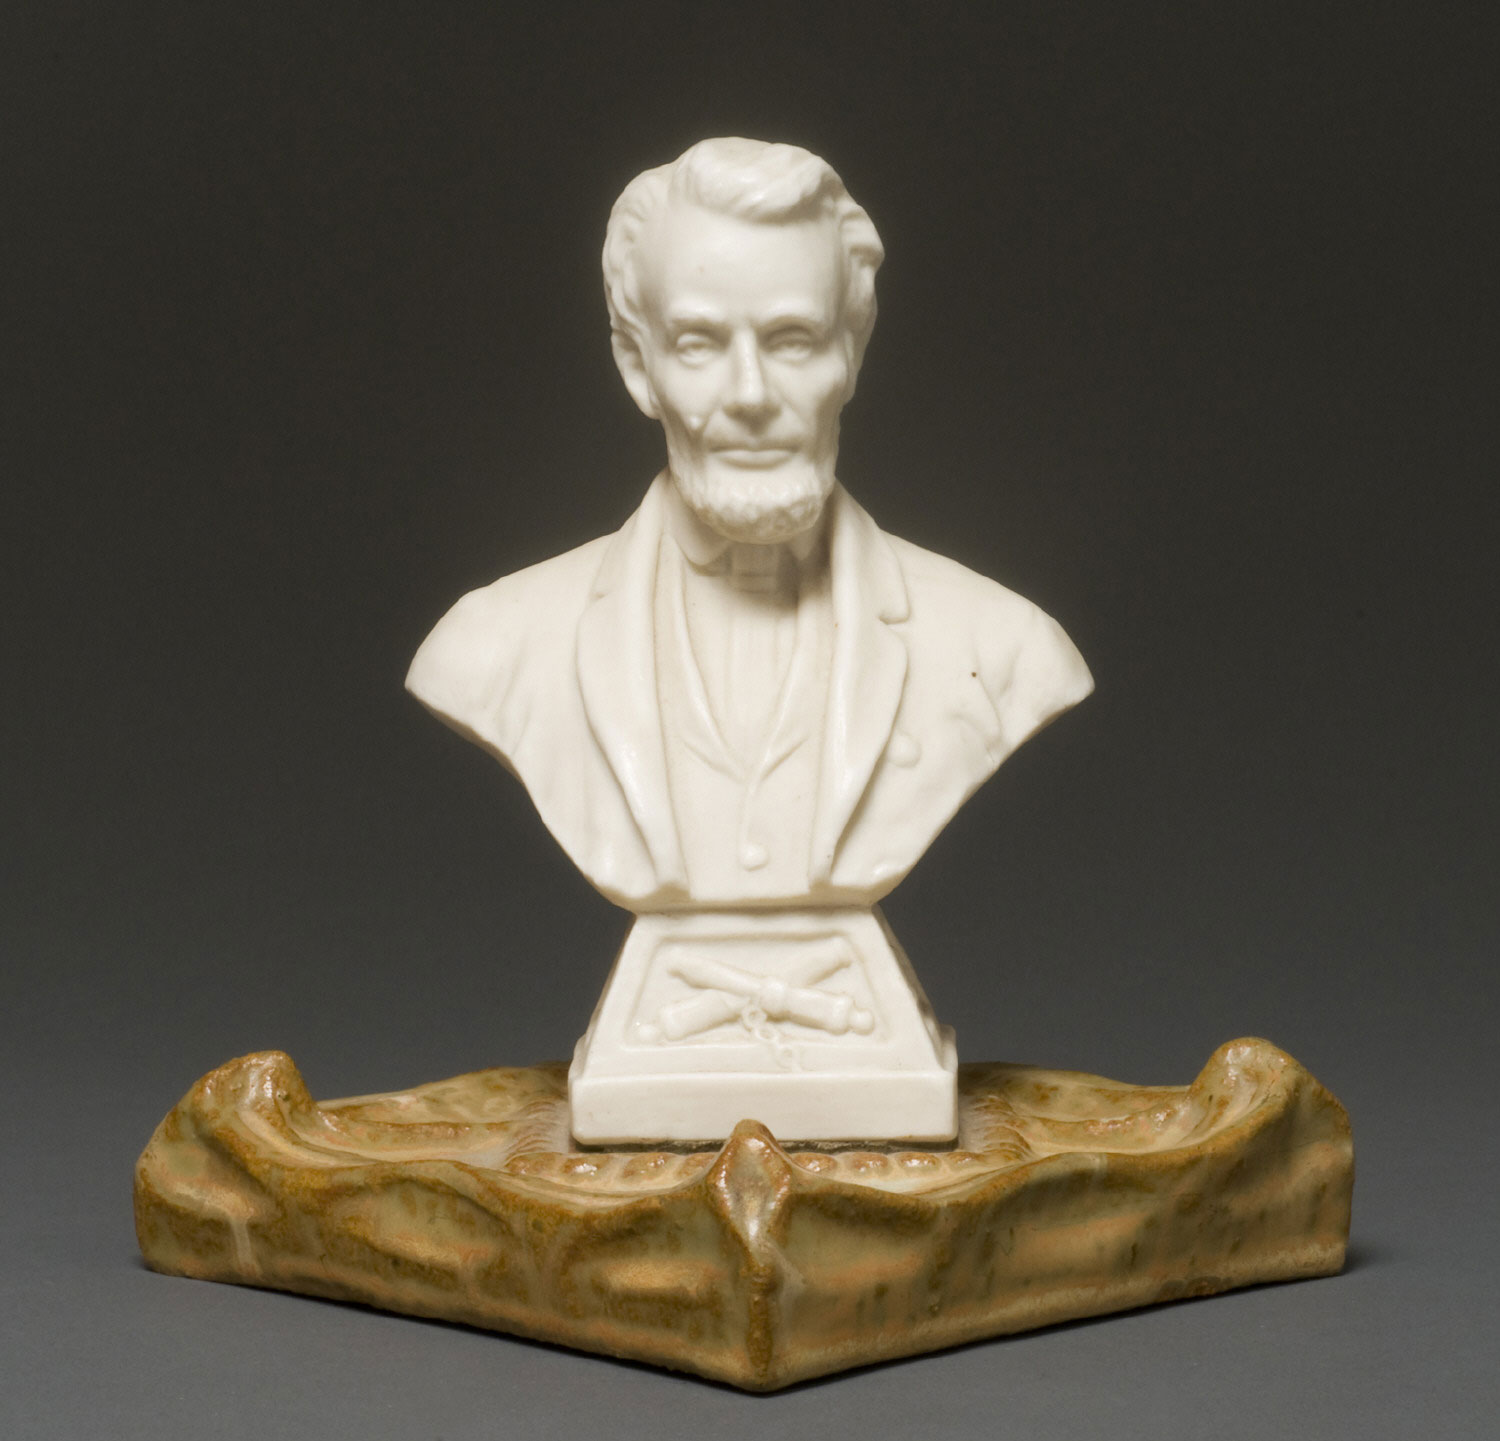 Tile with Bust of Abraham Lincoln